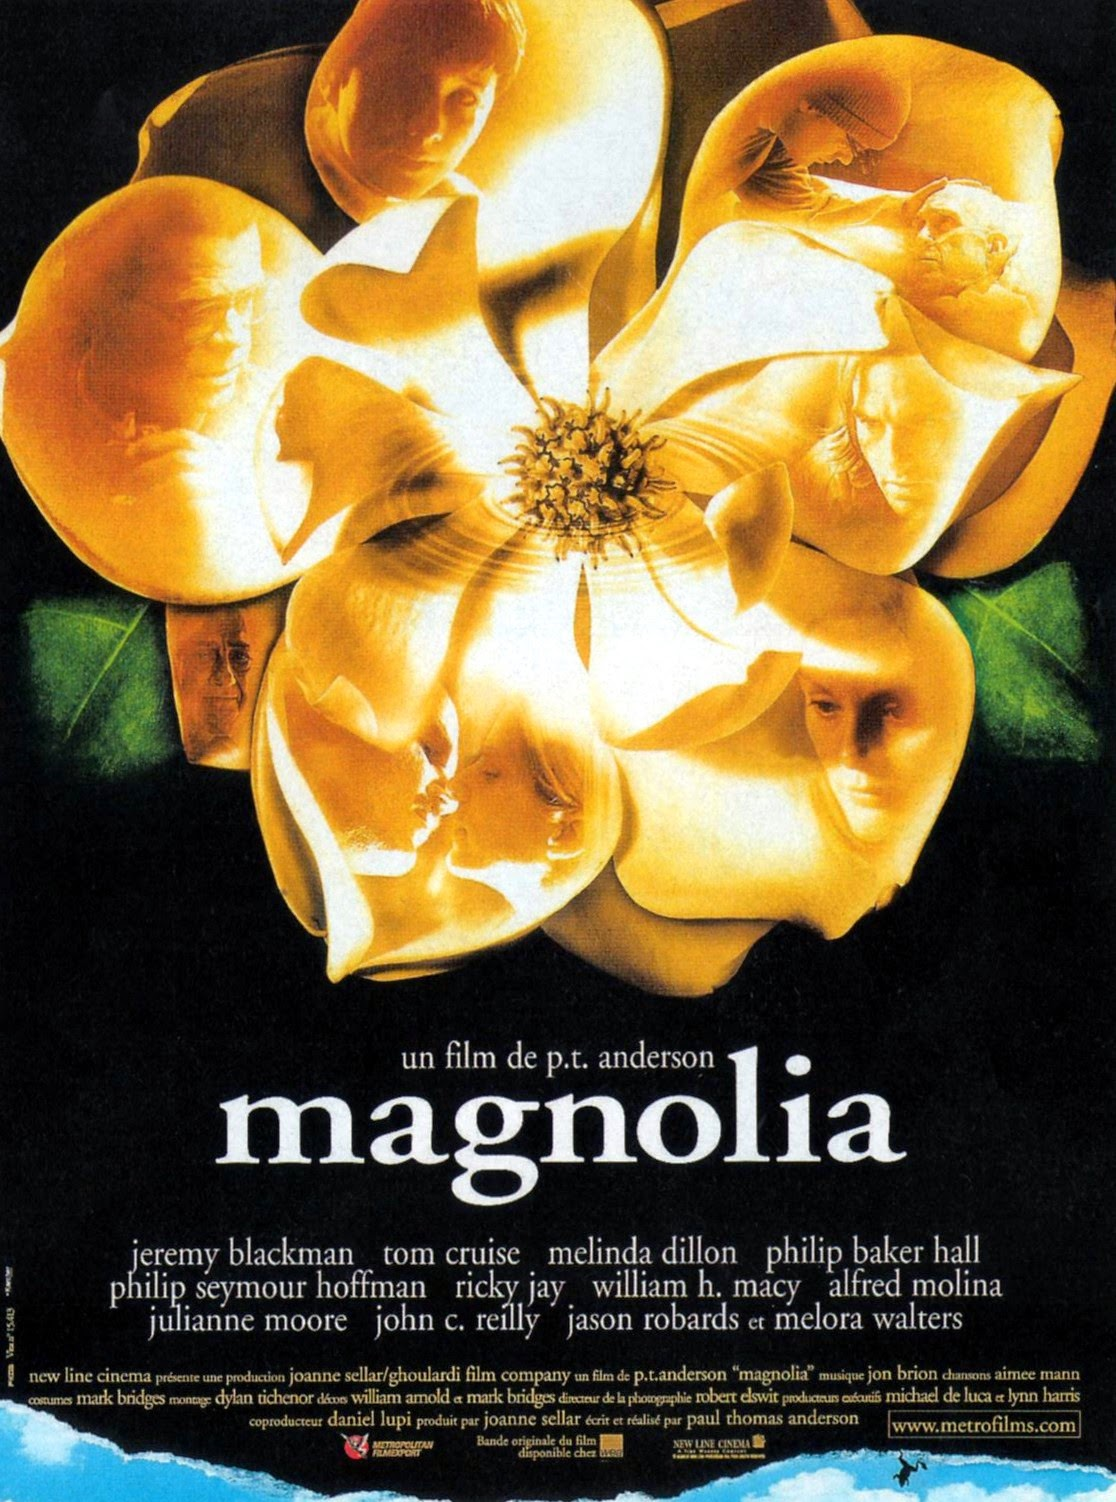 magnolia dir paul thomas anderson 1999 discreet charms magnolia french poster via carteles peliculas click the poster for a larger image